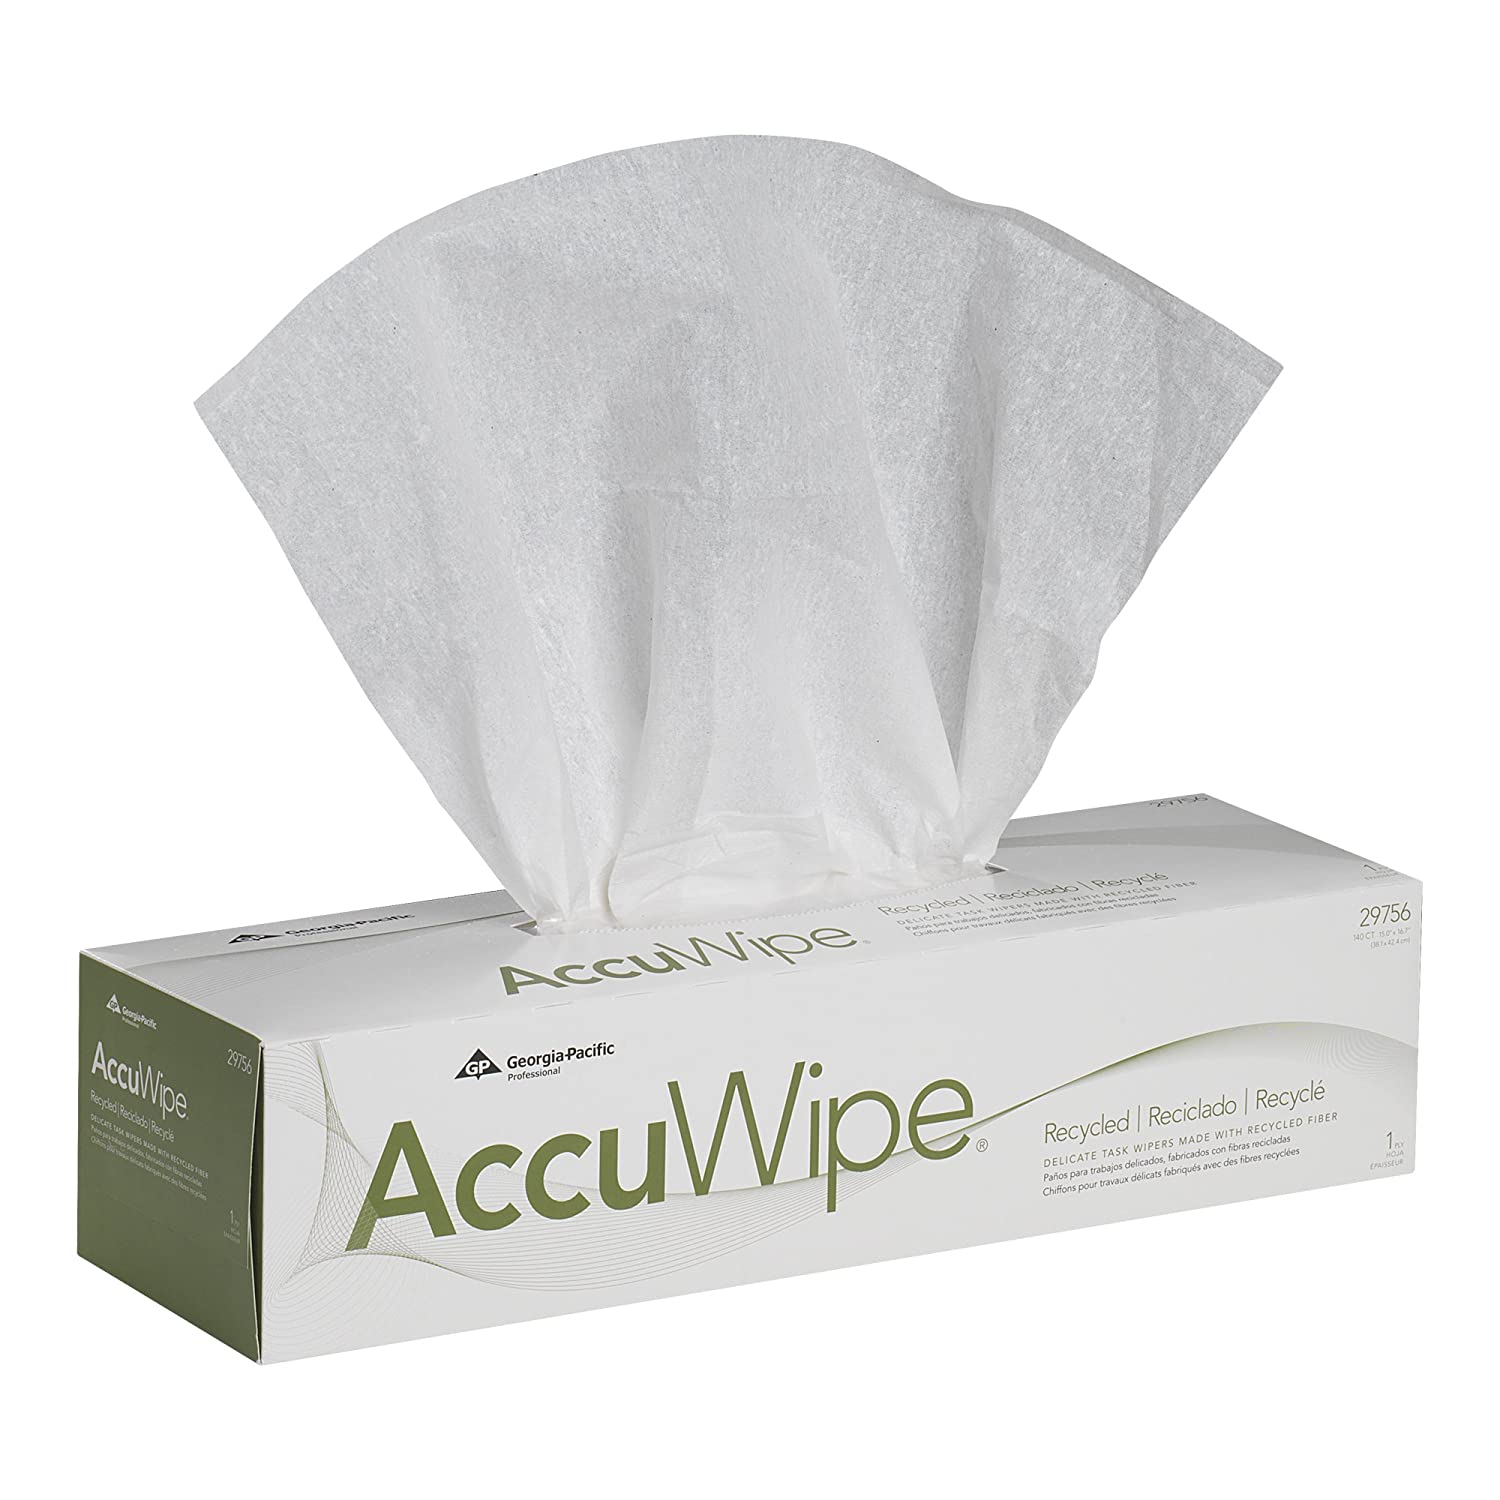 AccuWipe 29756/03 White Recycled 1-Ply Delicate Task Wiper, 16.7